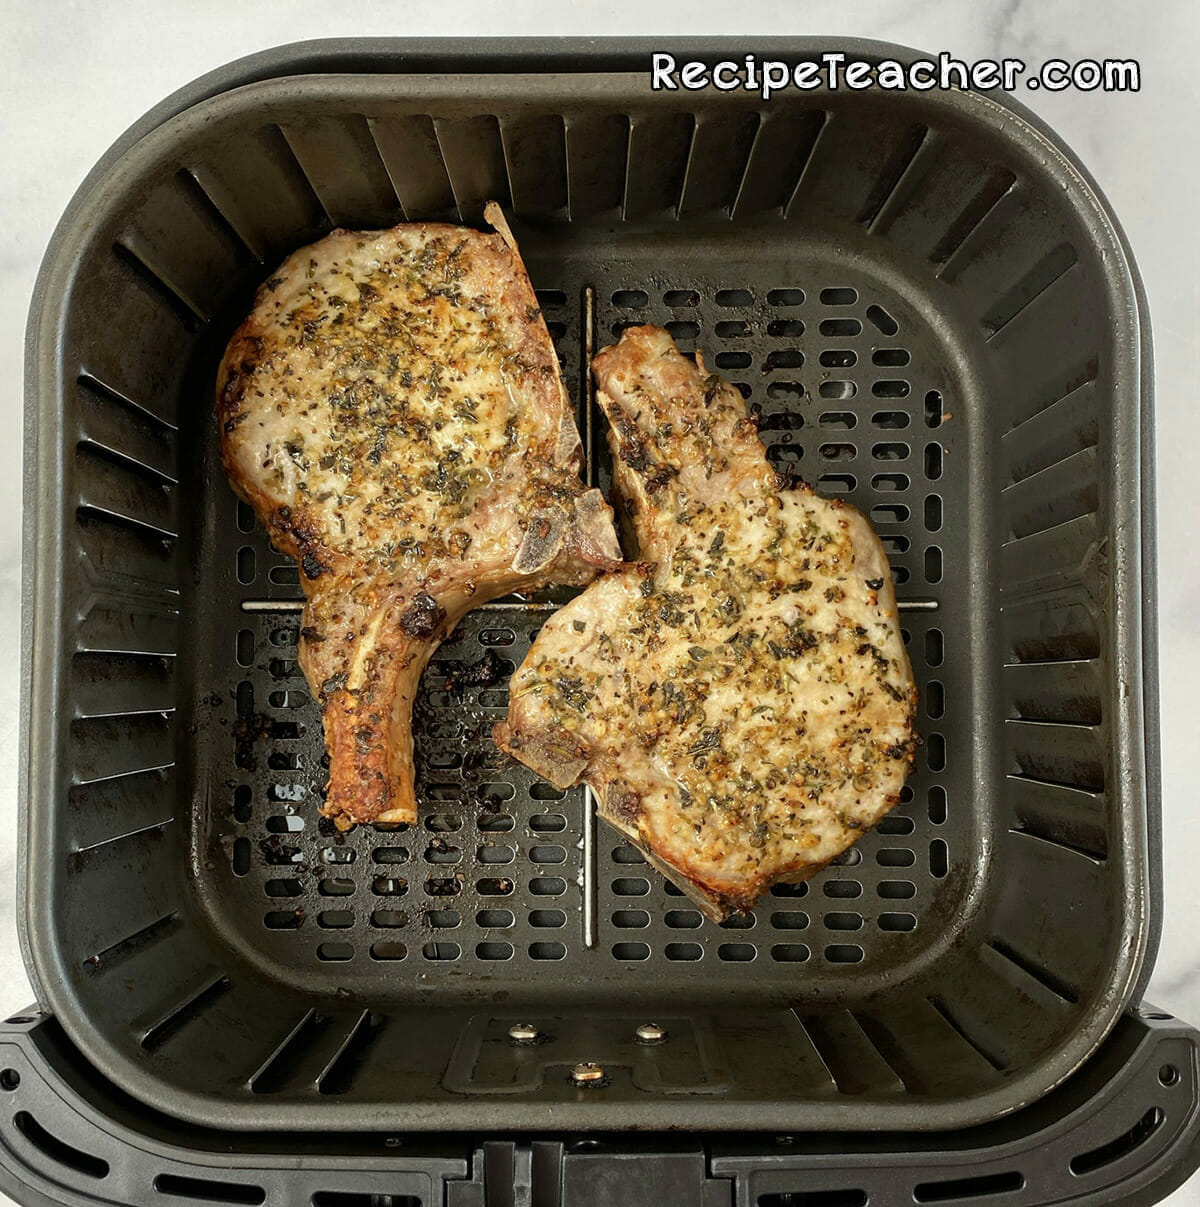 Seasoned thick and juicy pork chops coming out of the air fryer.